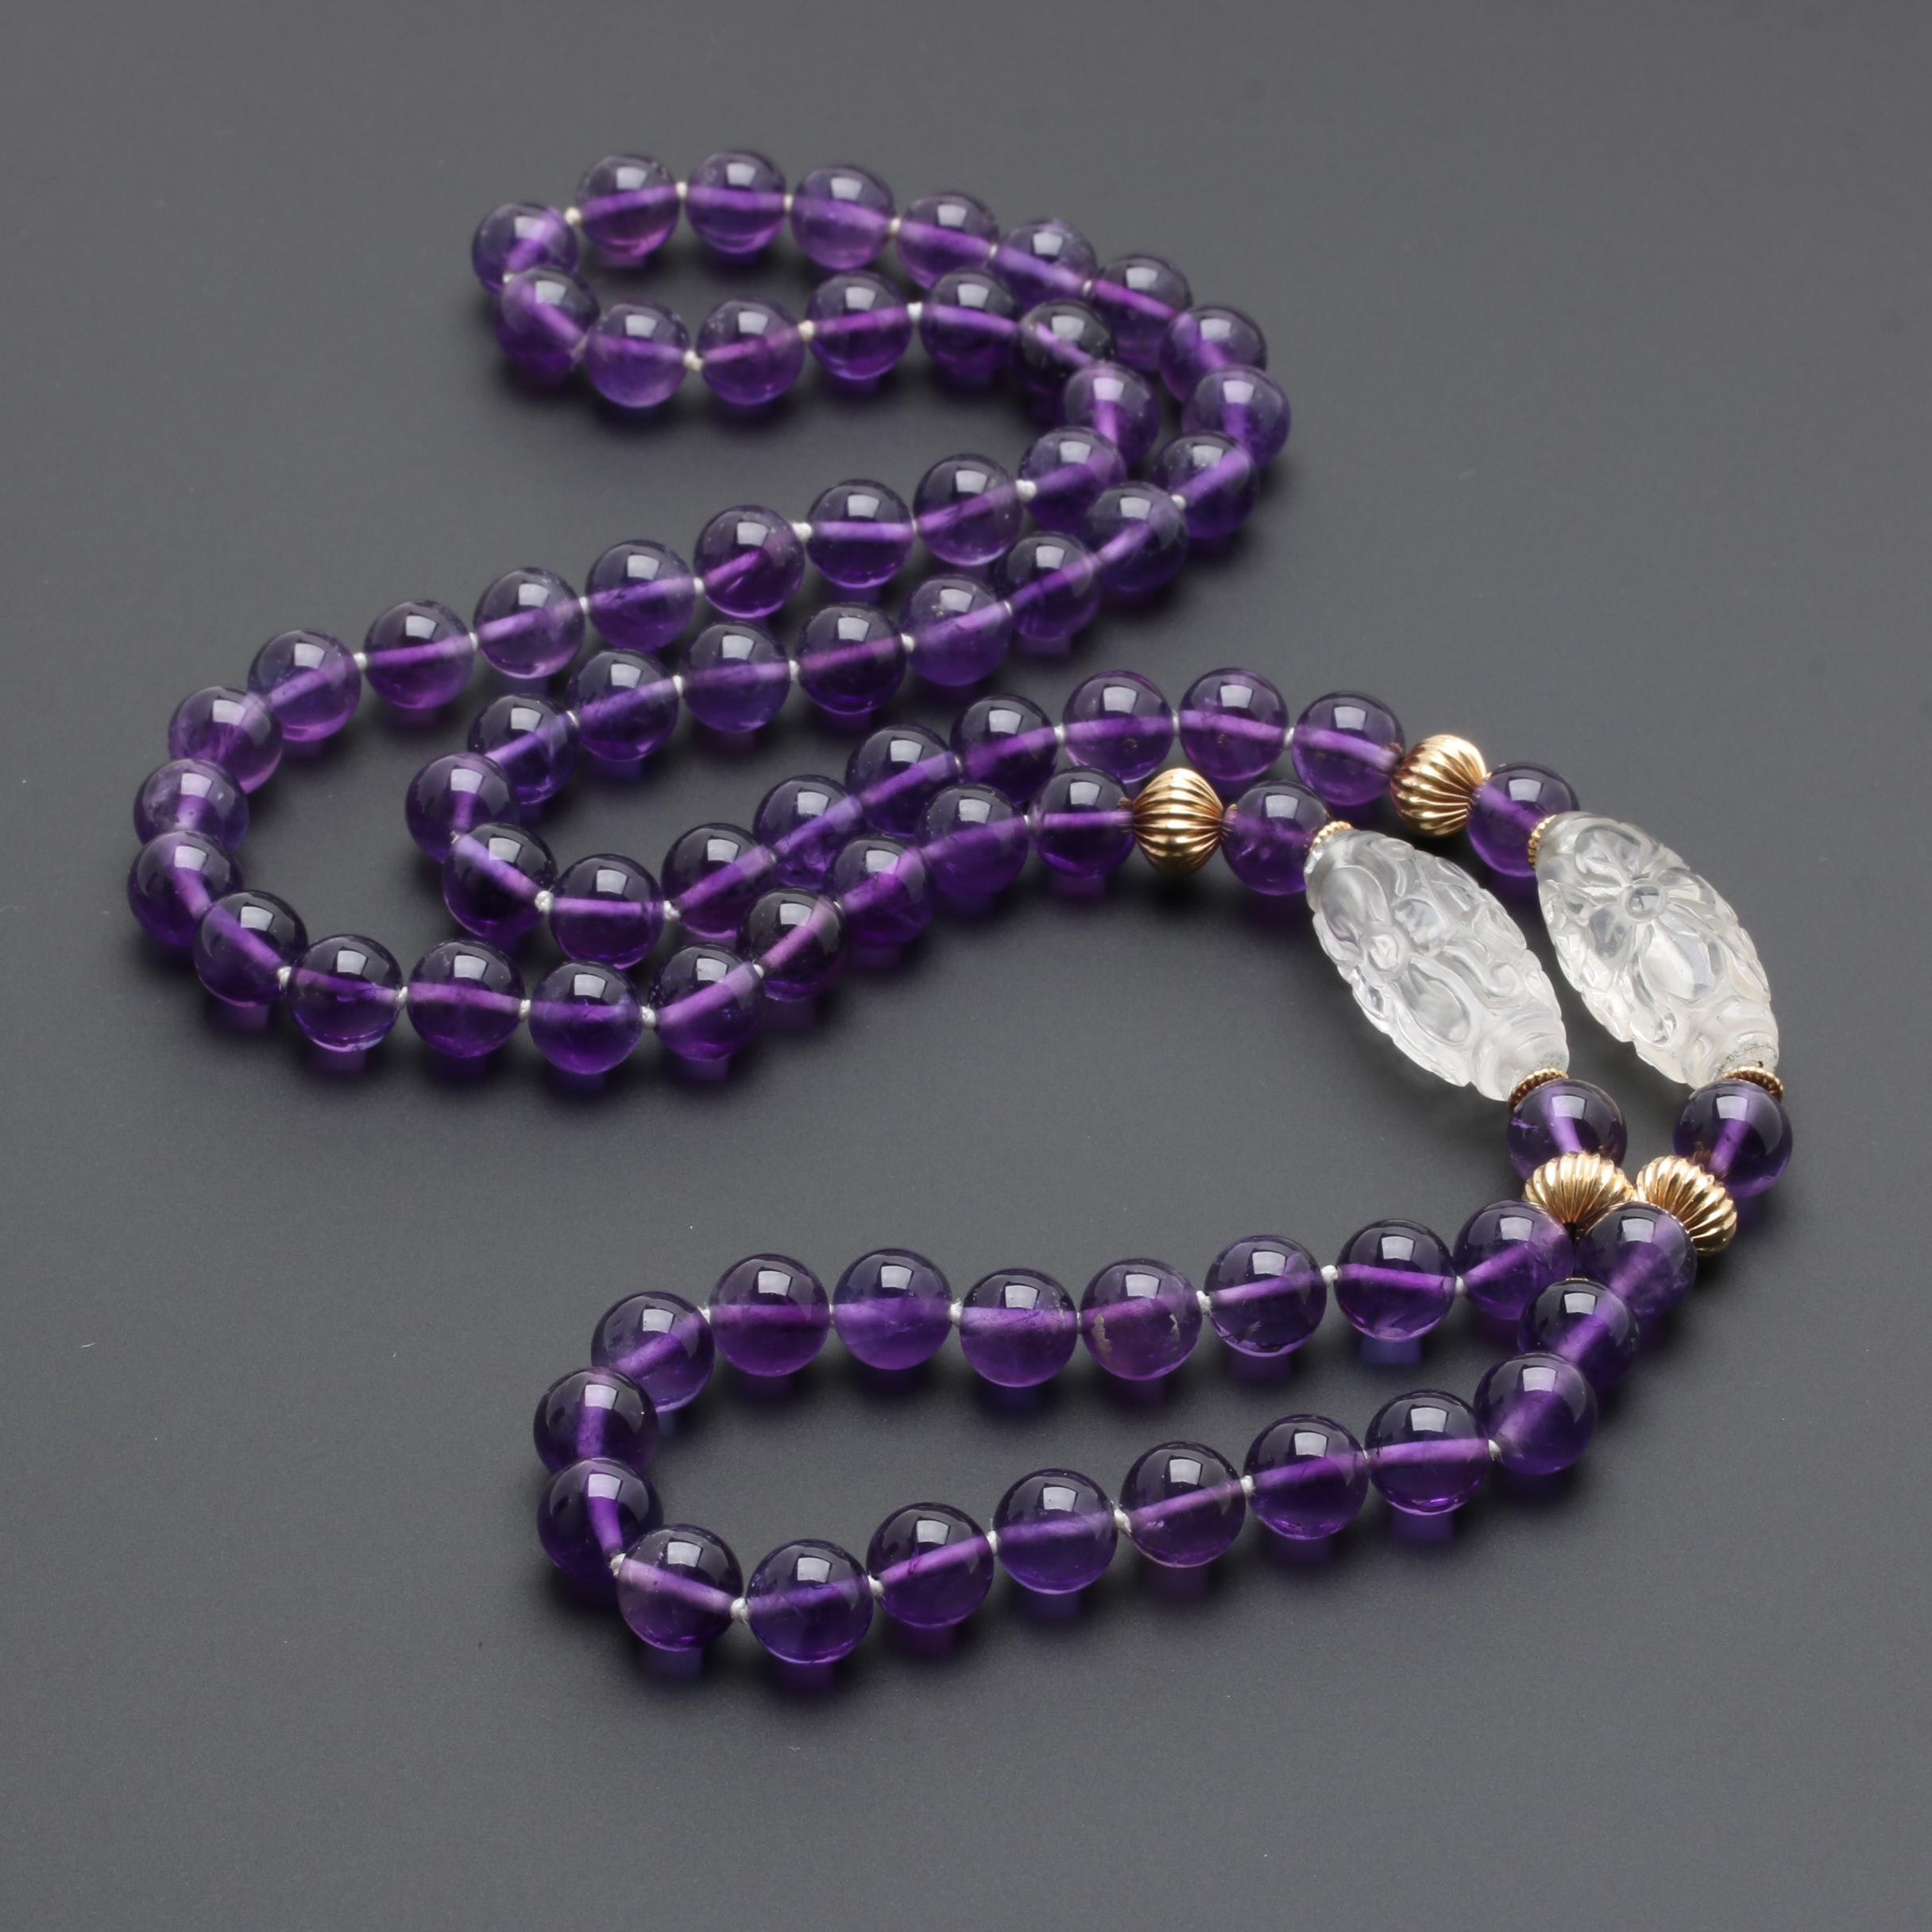 14K Yellow Gold Quartz and Amethyst Necklace